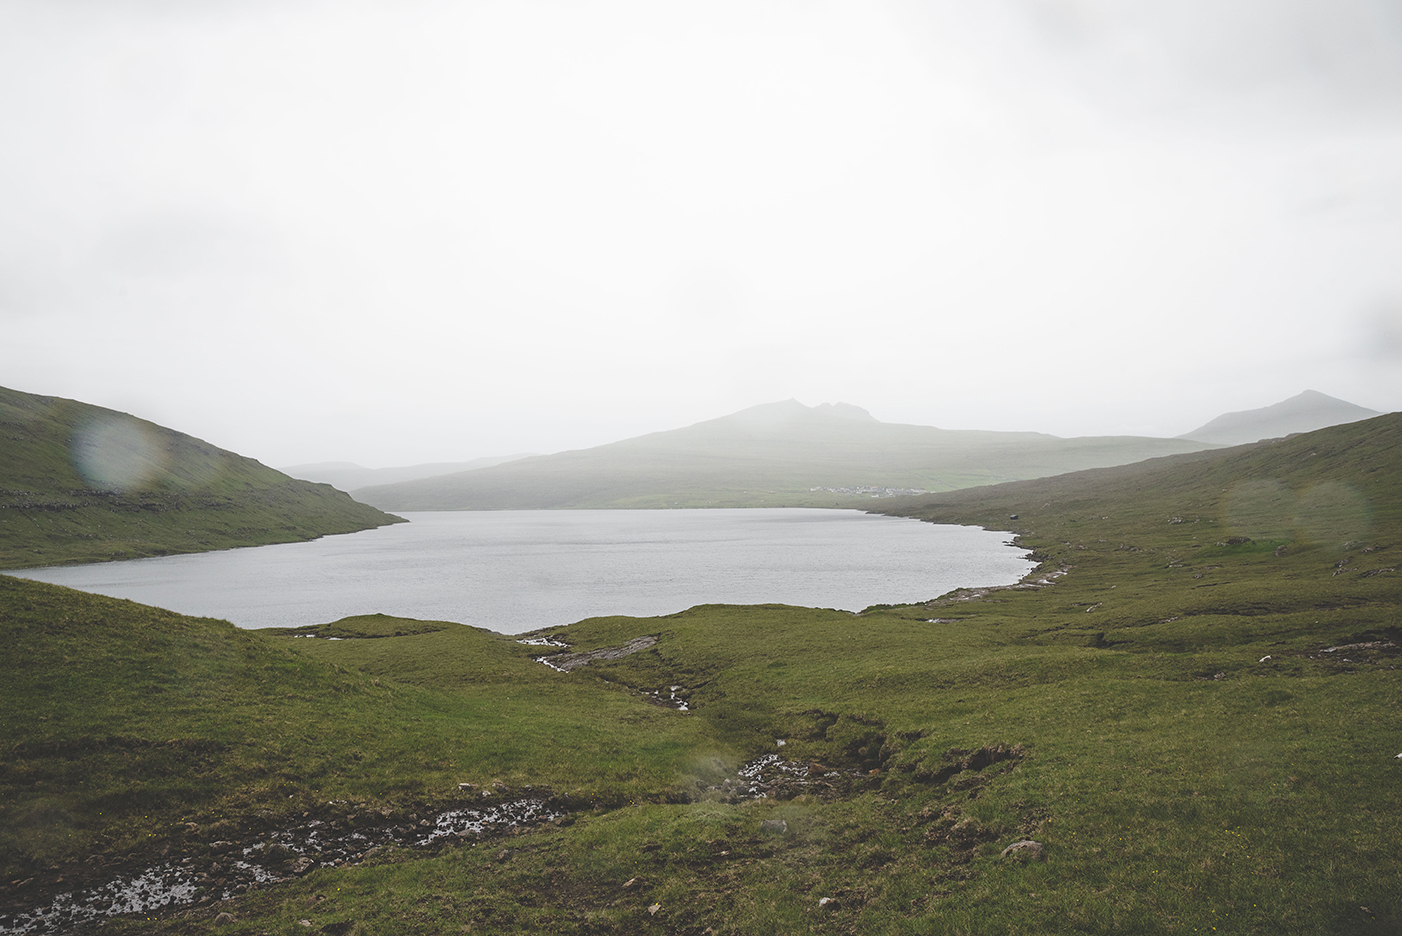 FaroeIslands_Day1_22-6-17_TAL-26.jpg